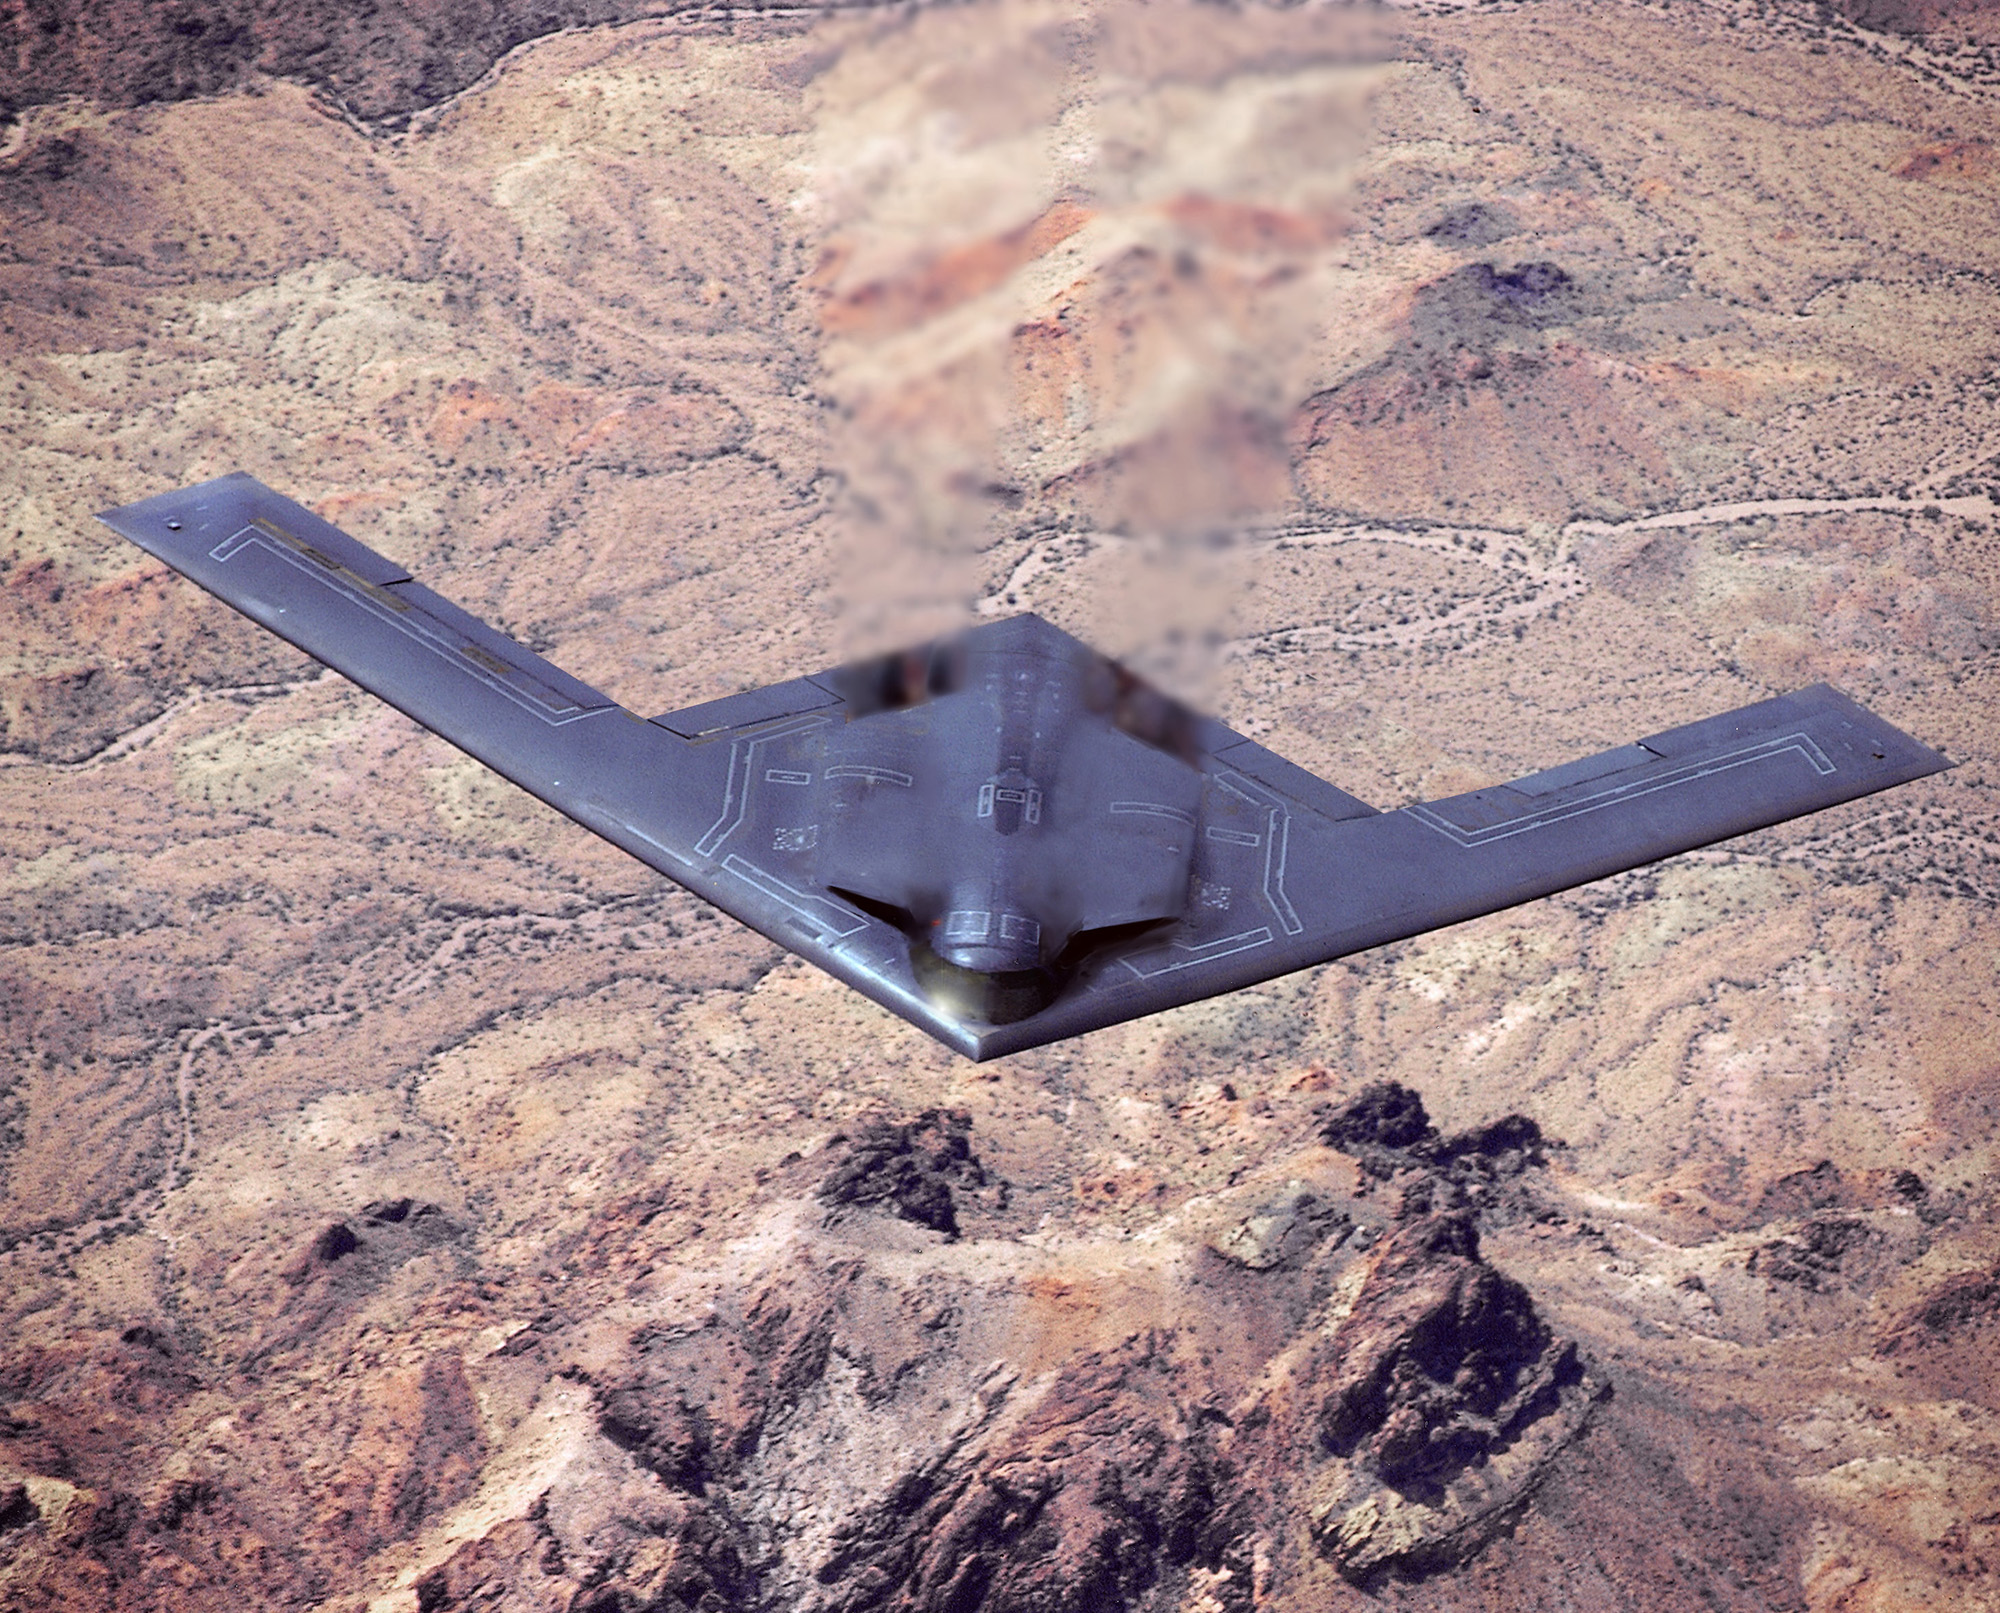 B-21_top_view_desert.jpg